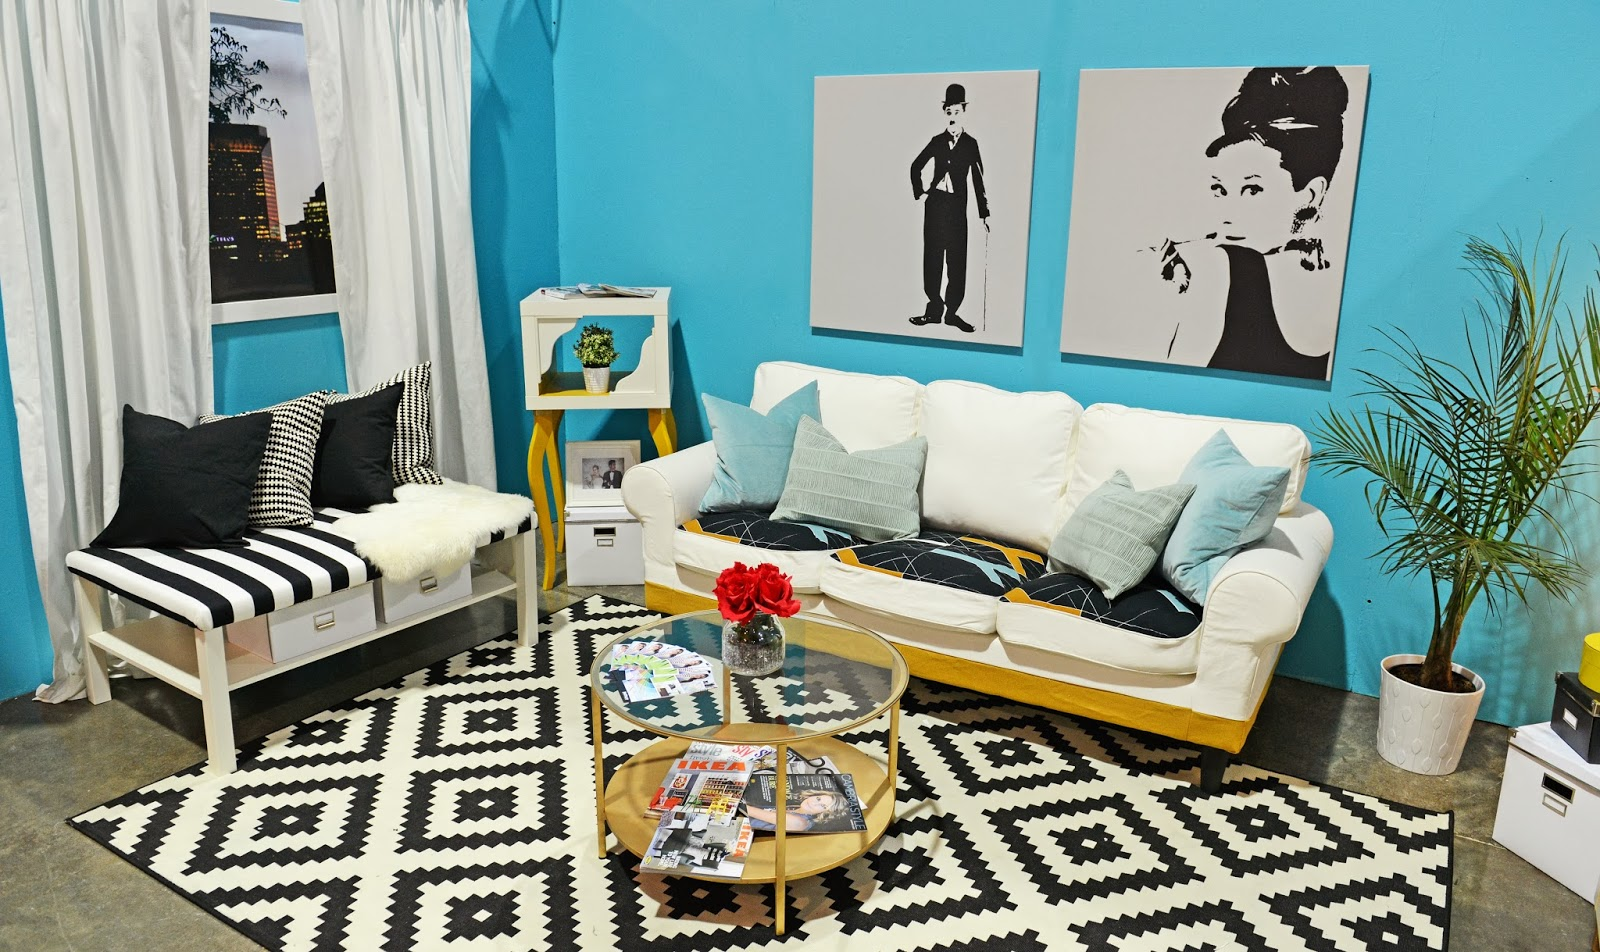 Black and white and teal bedroom - Retro Rewind In The Living Room Marketplace Events Black And Blue Bedroom